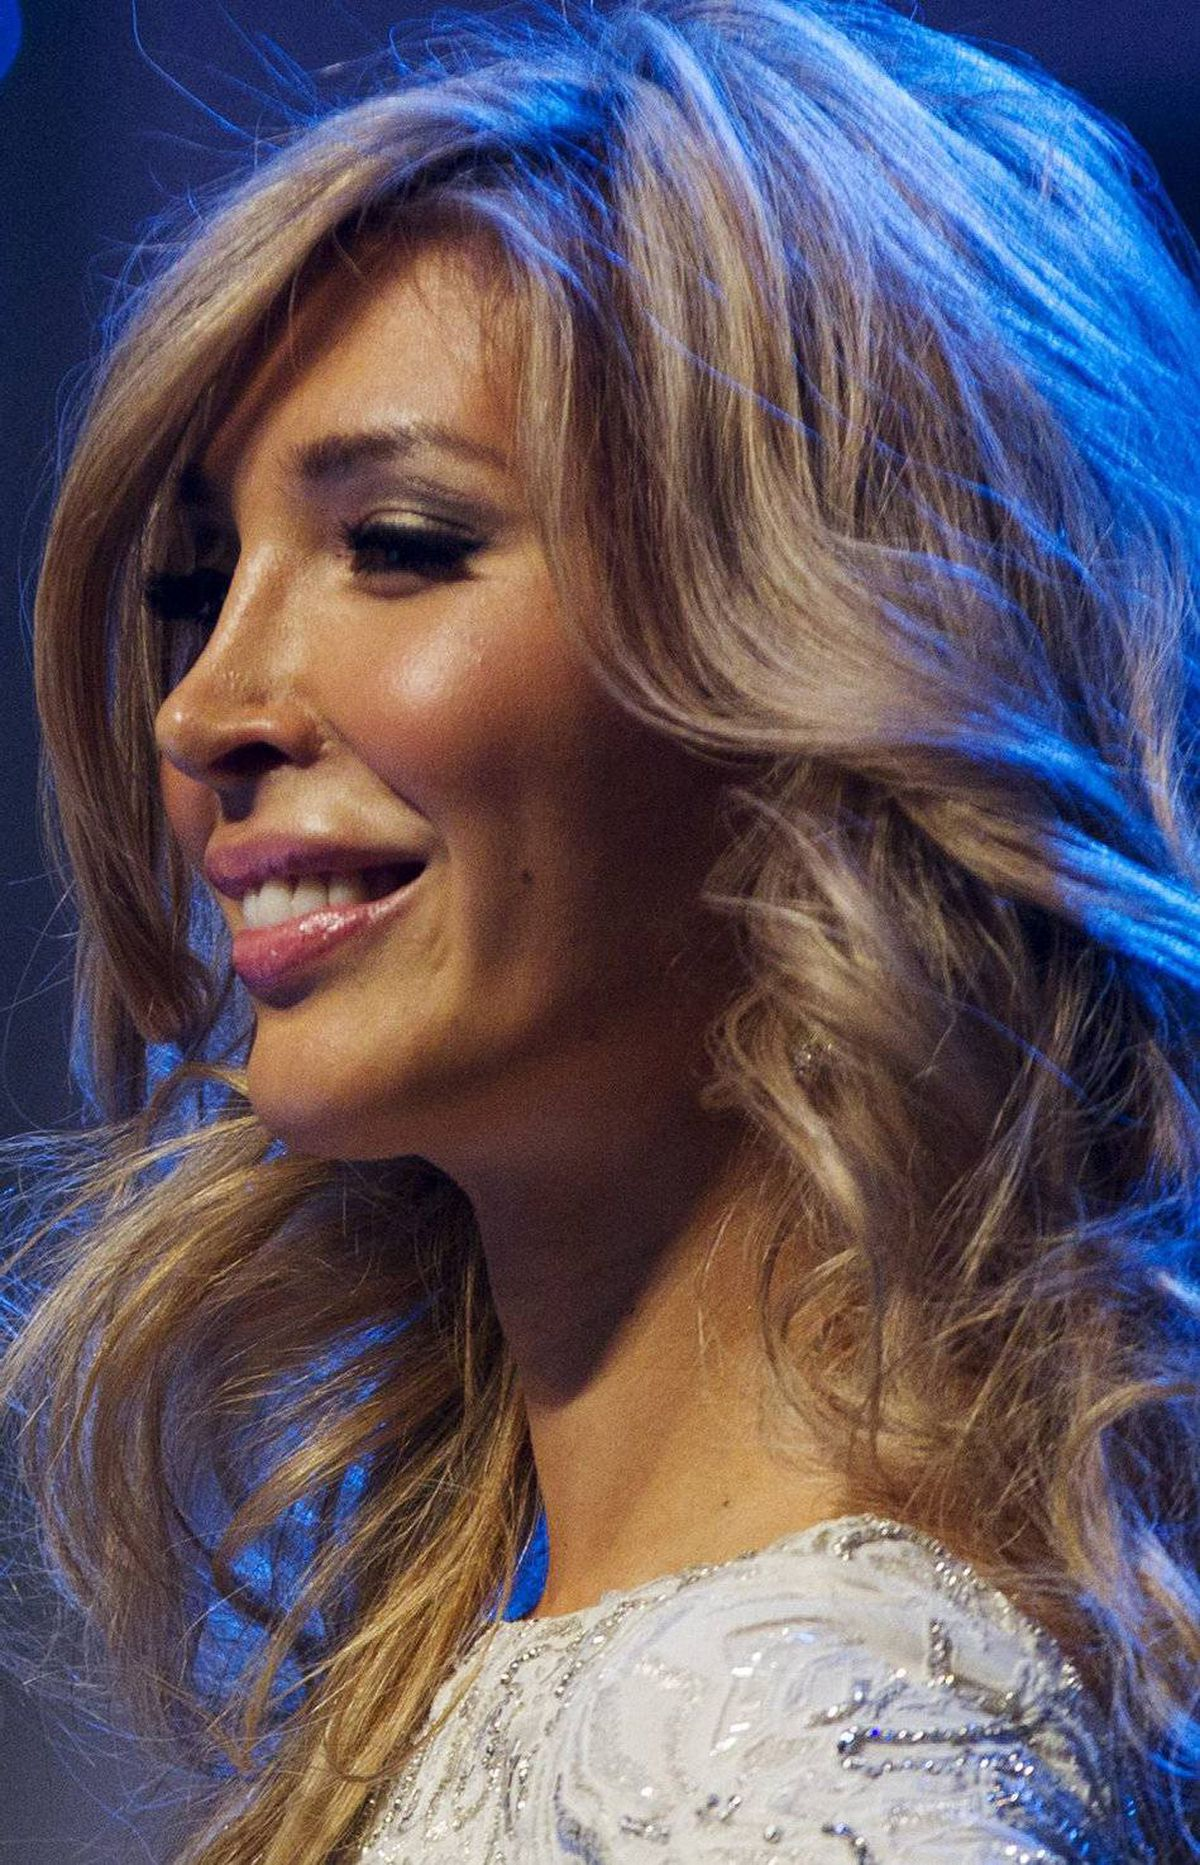 Jenna Talackova smiles at the crowd during the Miss Universe Canada competition in Toronto on May 17, 2012.